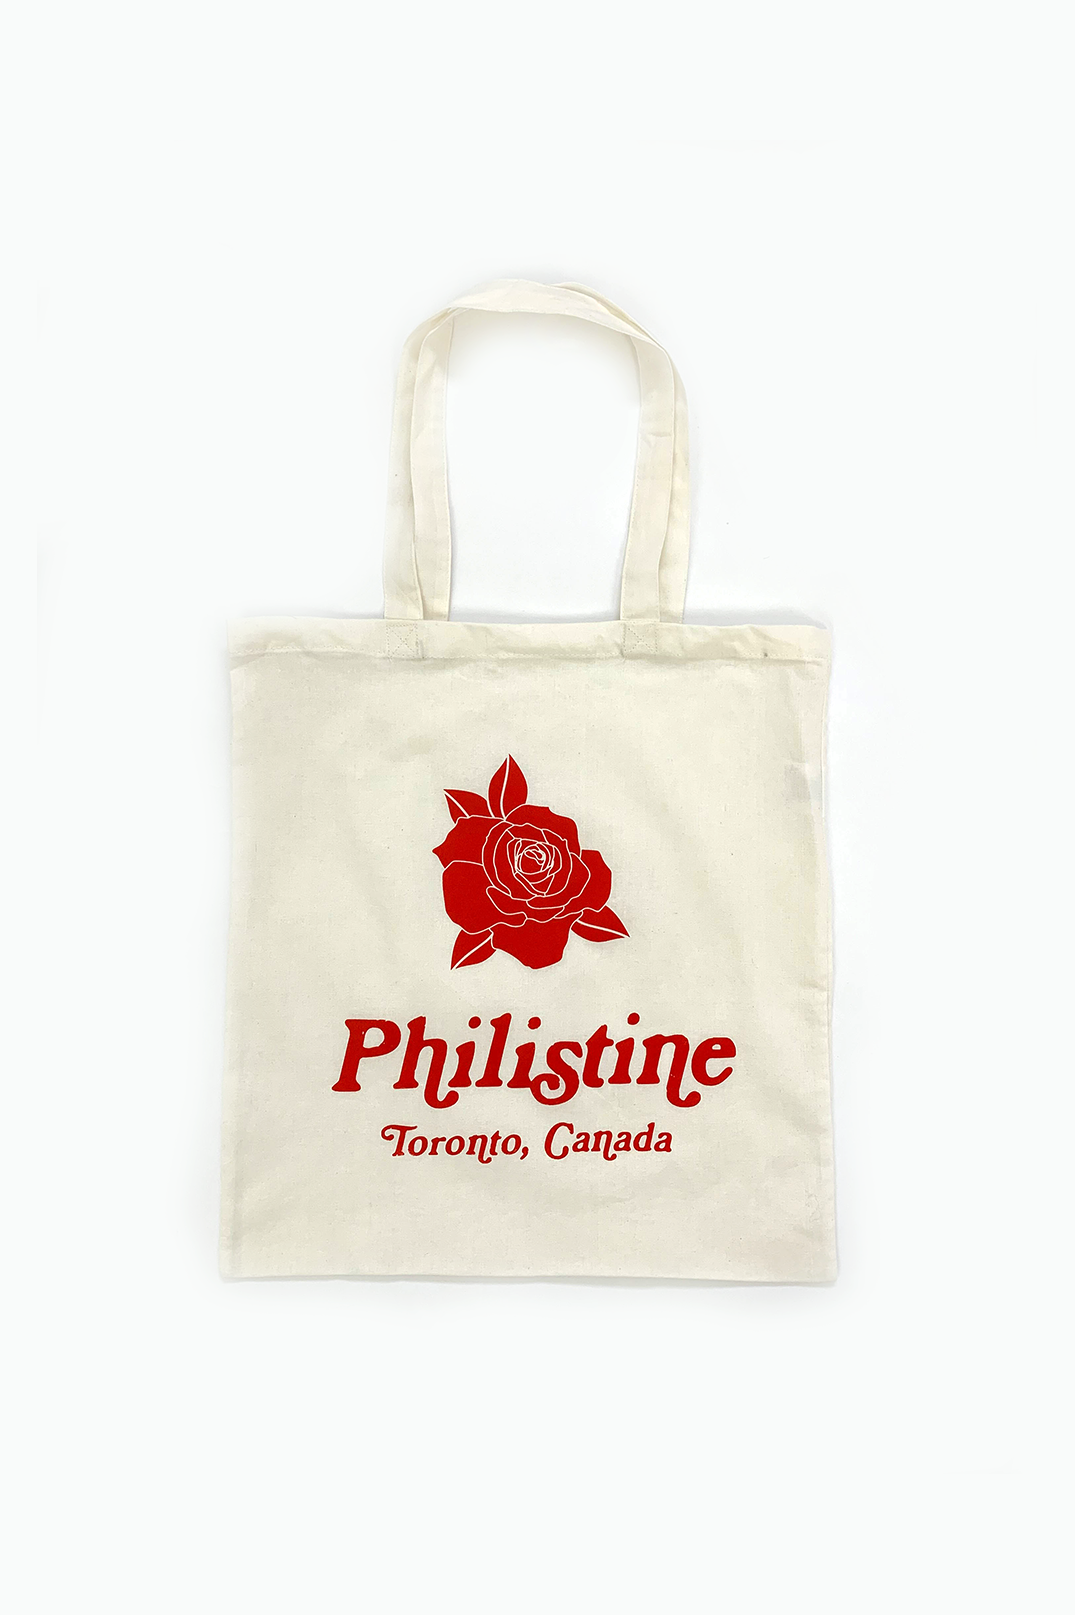 Philistine Rose Tote - Philistine